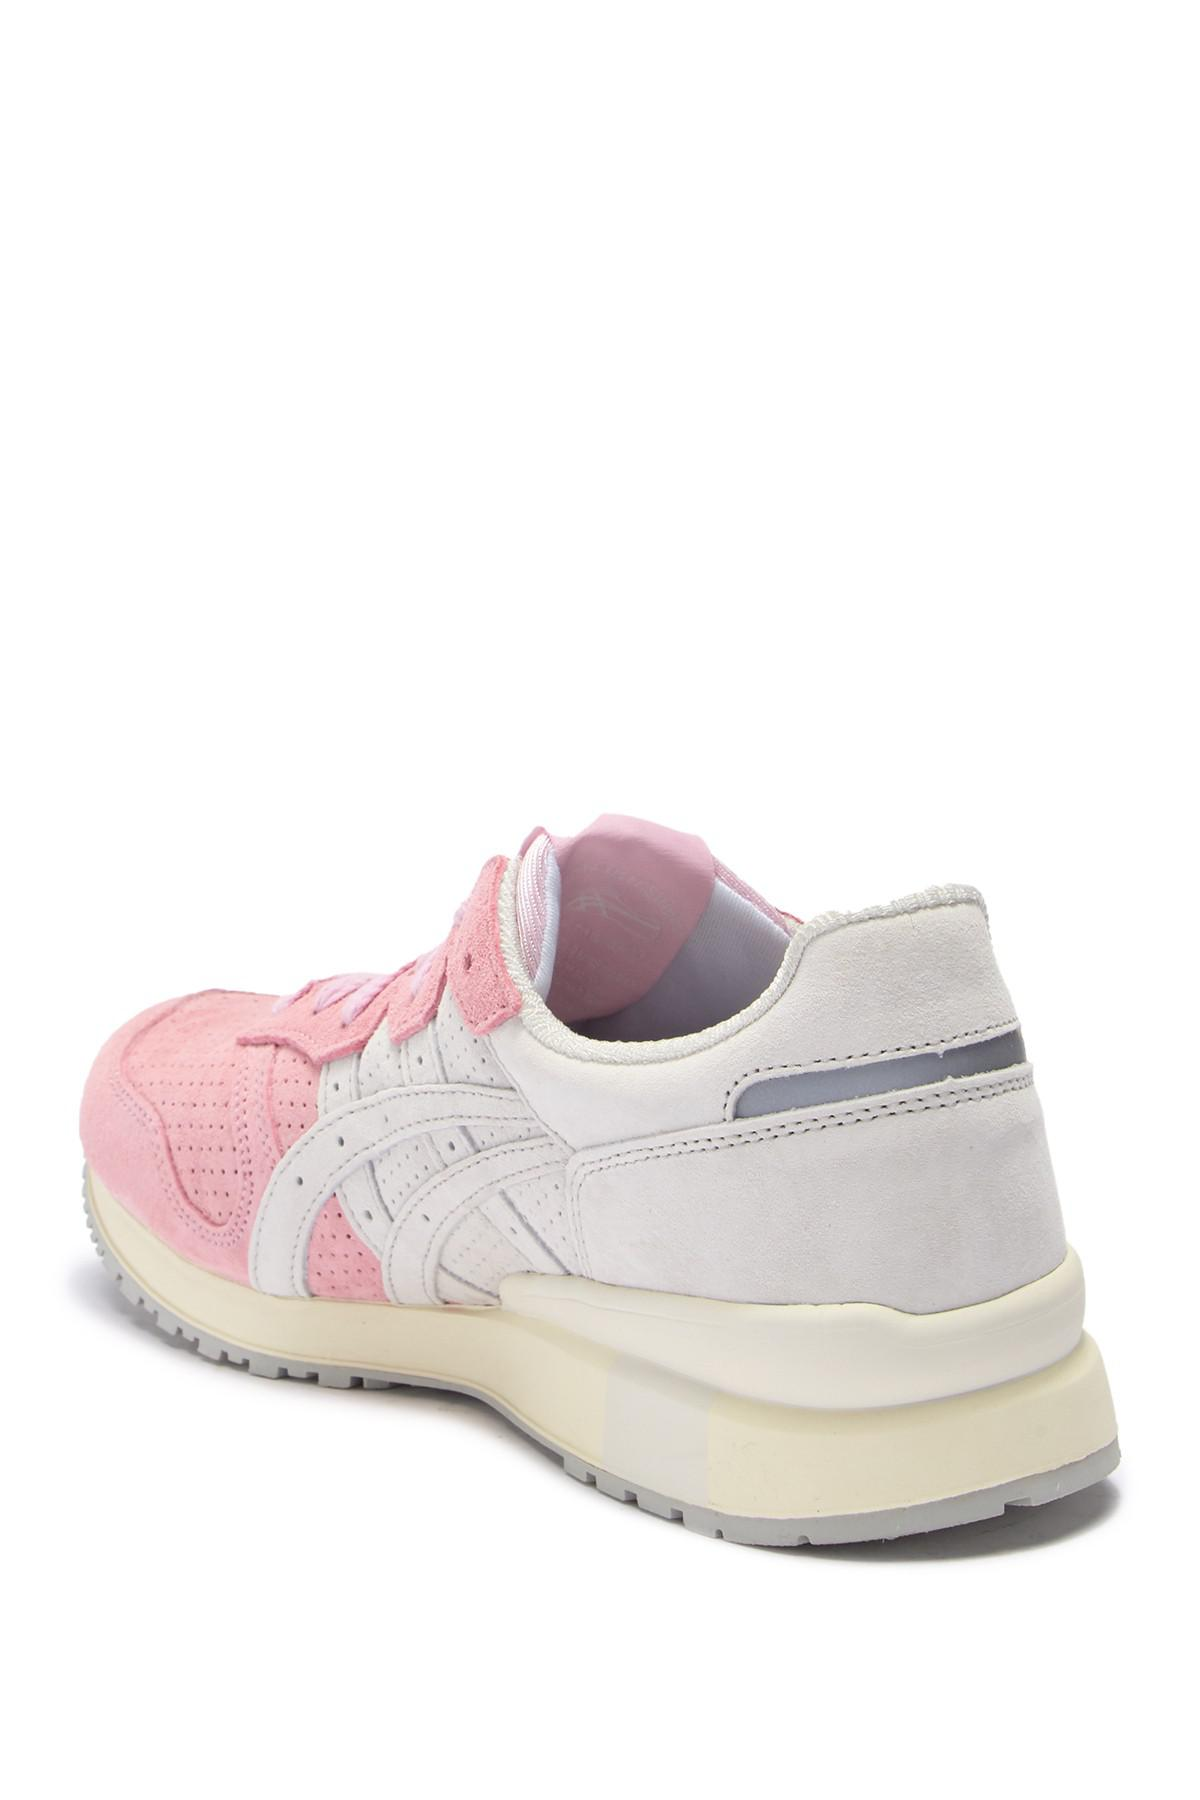 watch 918ba a99e3 Lyst - Asics Tiger Ally Suede Sneaker in Pink for Men